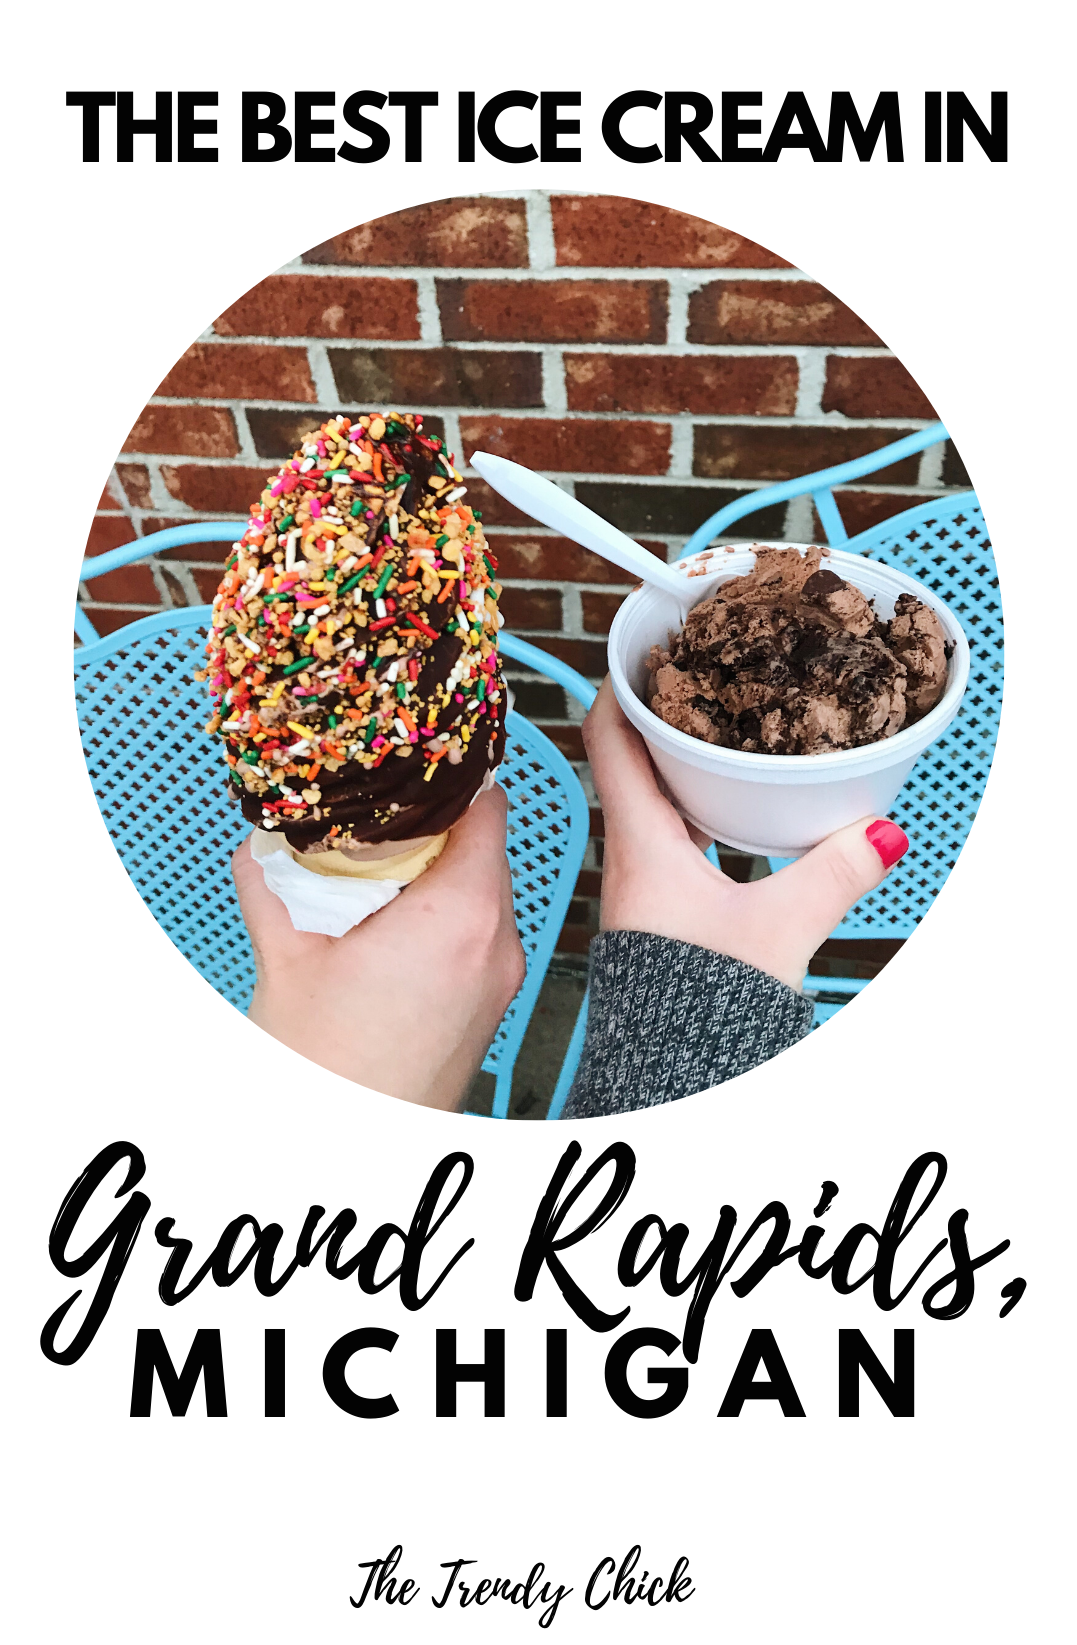 The Best Ice Cream In Grand Rapids, MI